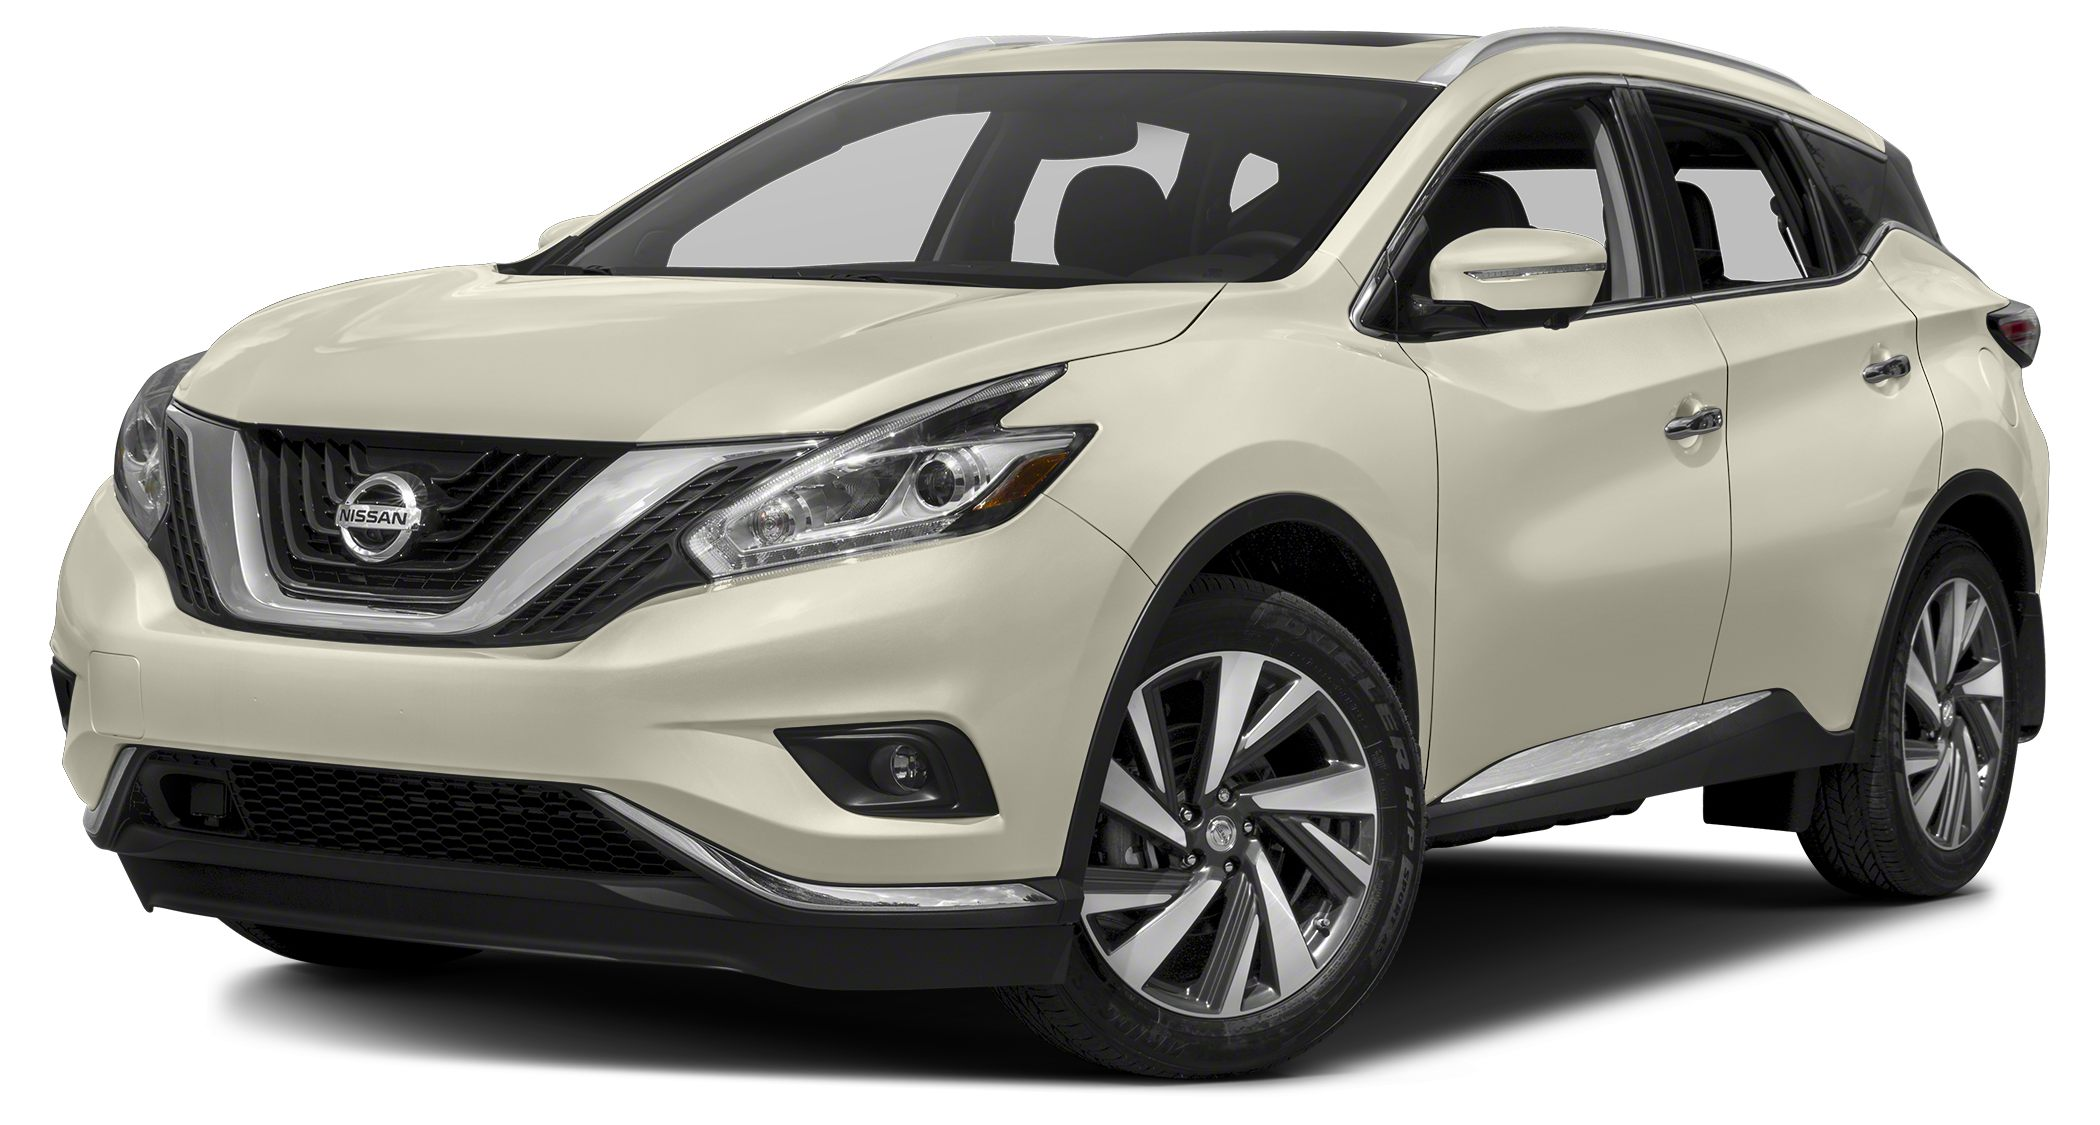 2015 Nissan Murano SL   BUY SMART OWN CONFIDENCE     Only Nissans that meet our high sta